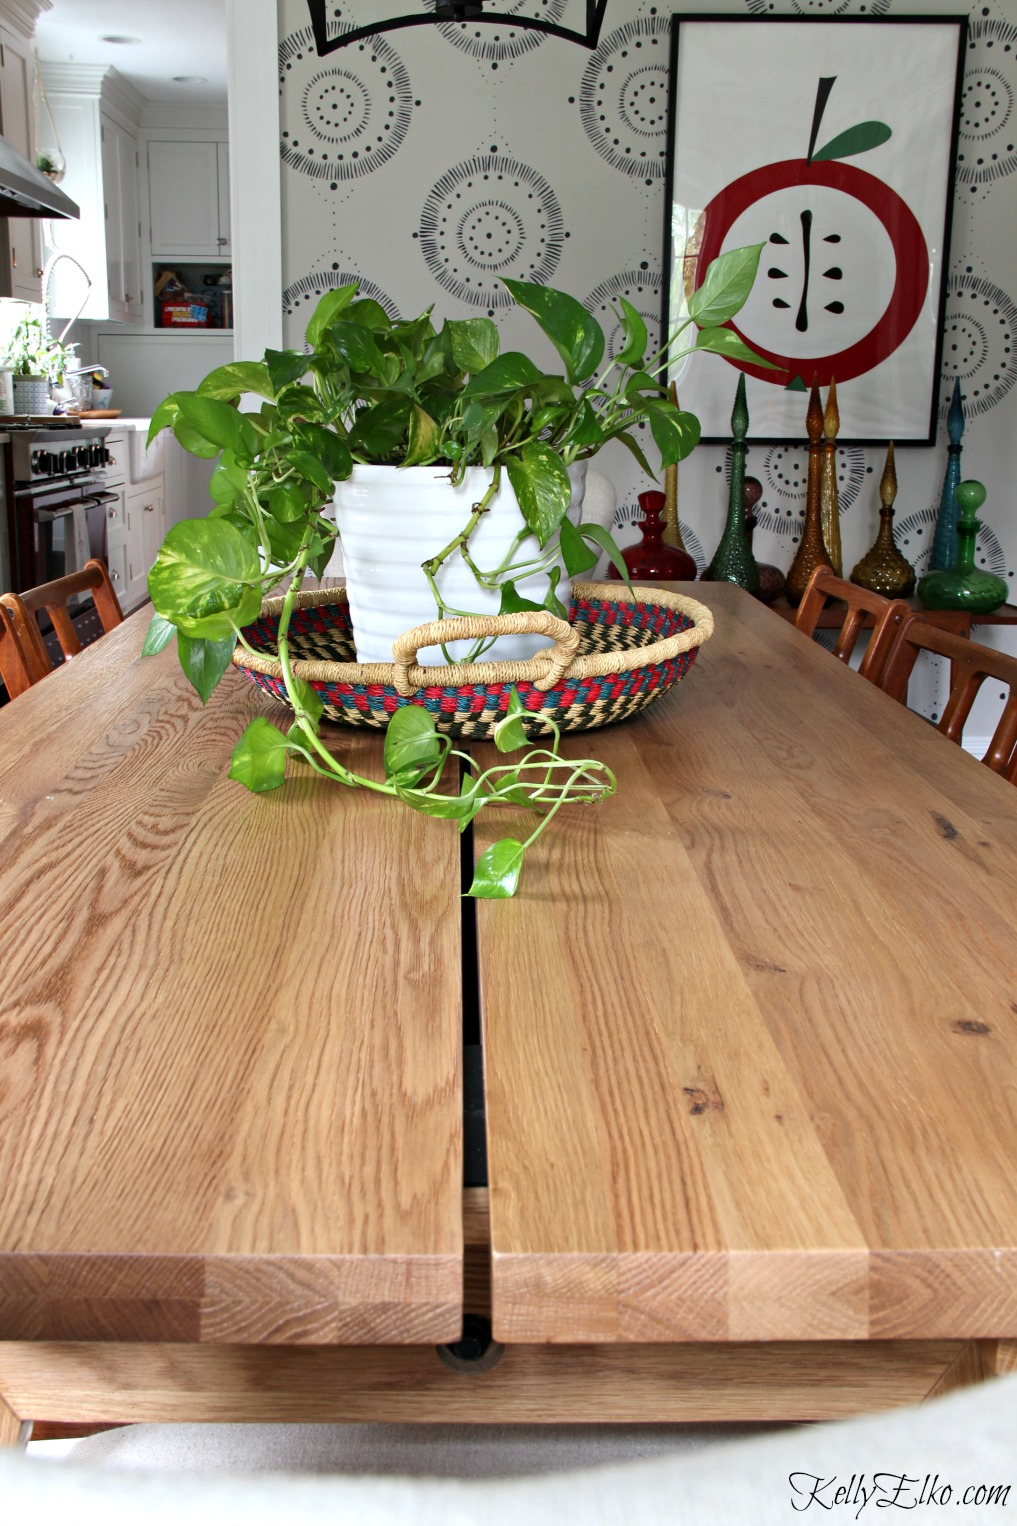 Love this solid oak dining table that's extendable to seat 12! kellyelko.com #diningroom #diningtable #diningroomfurniture #mural #centerpiece